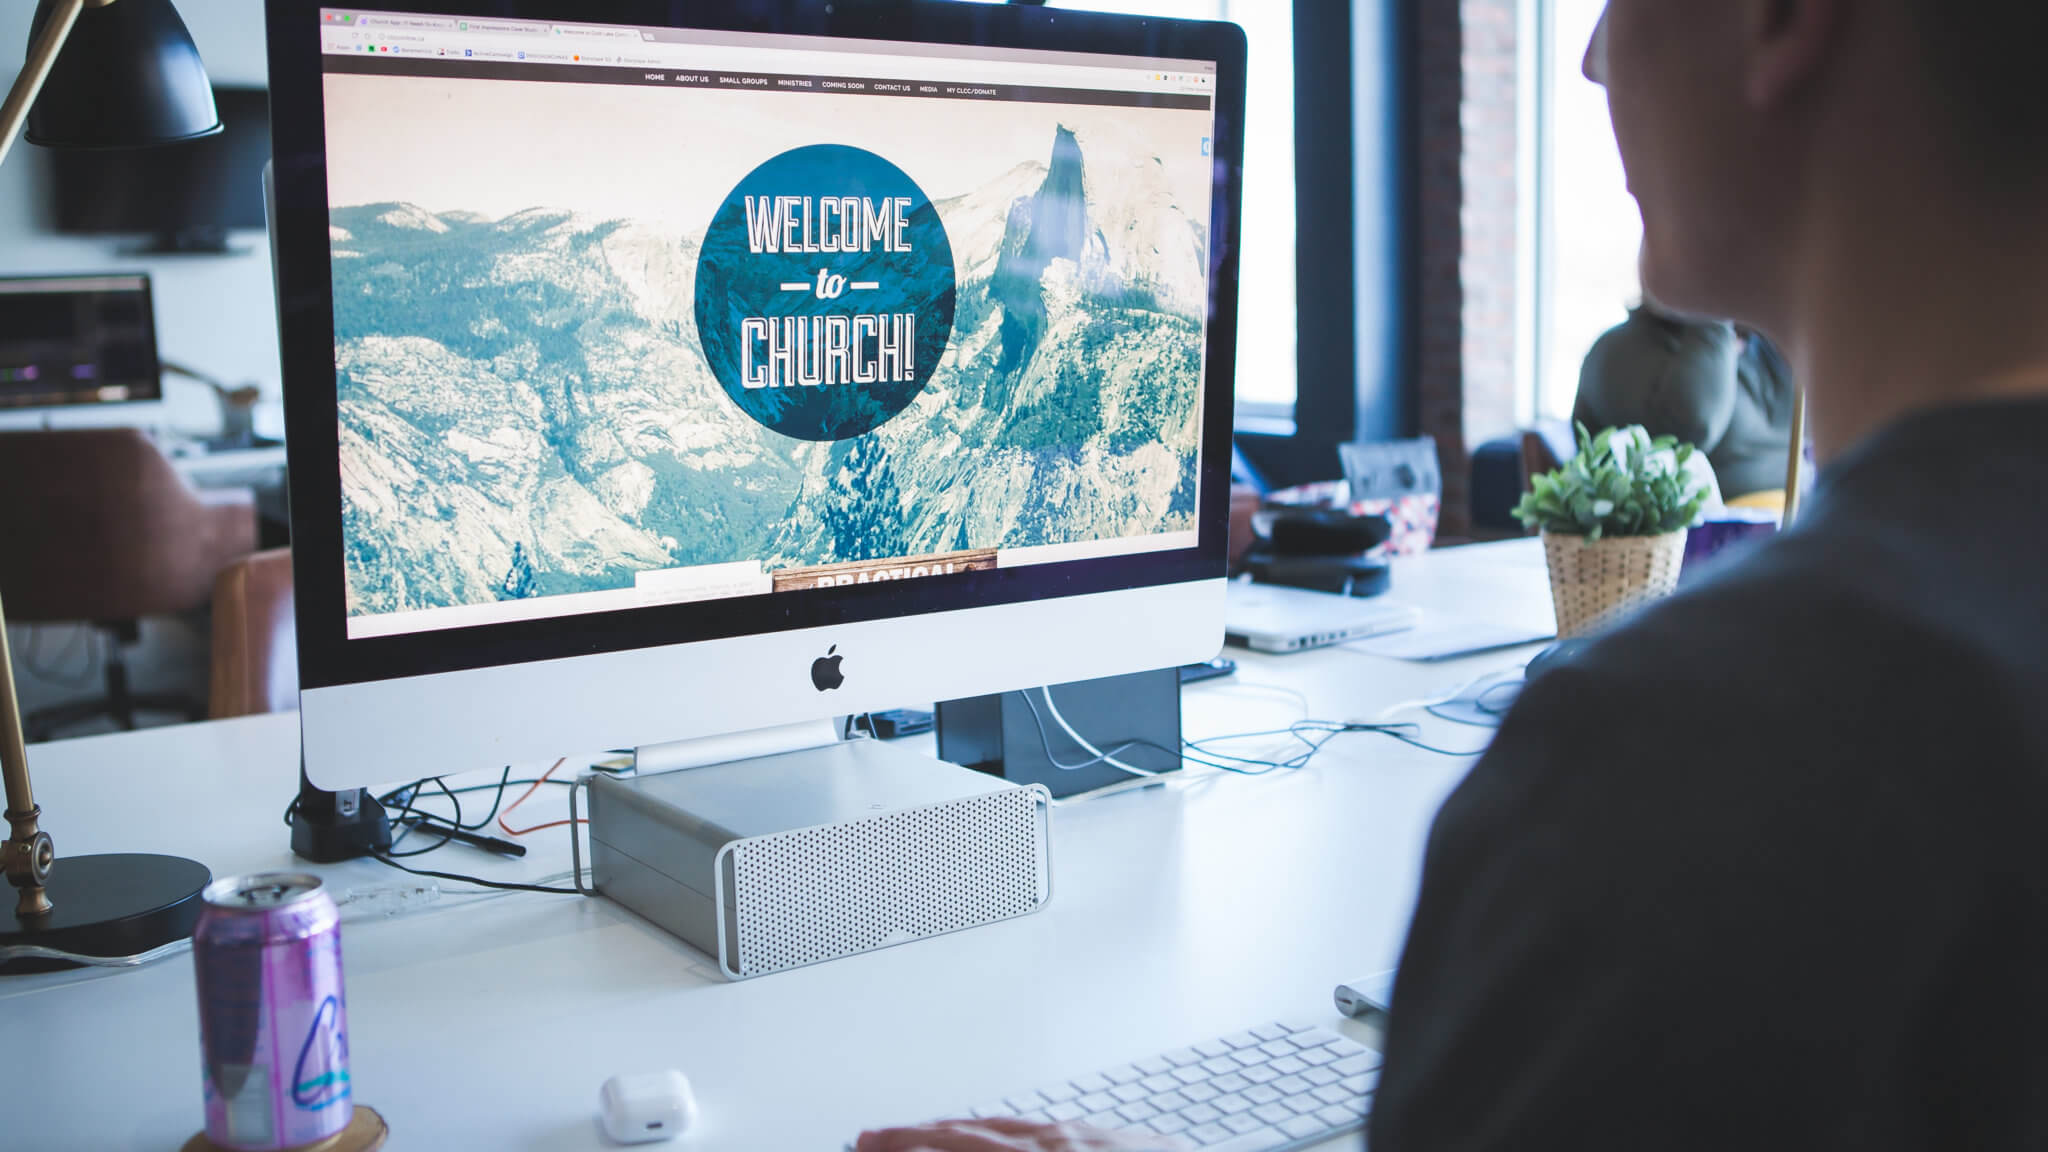 The first impression test measures the baseline for what a church website should be